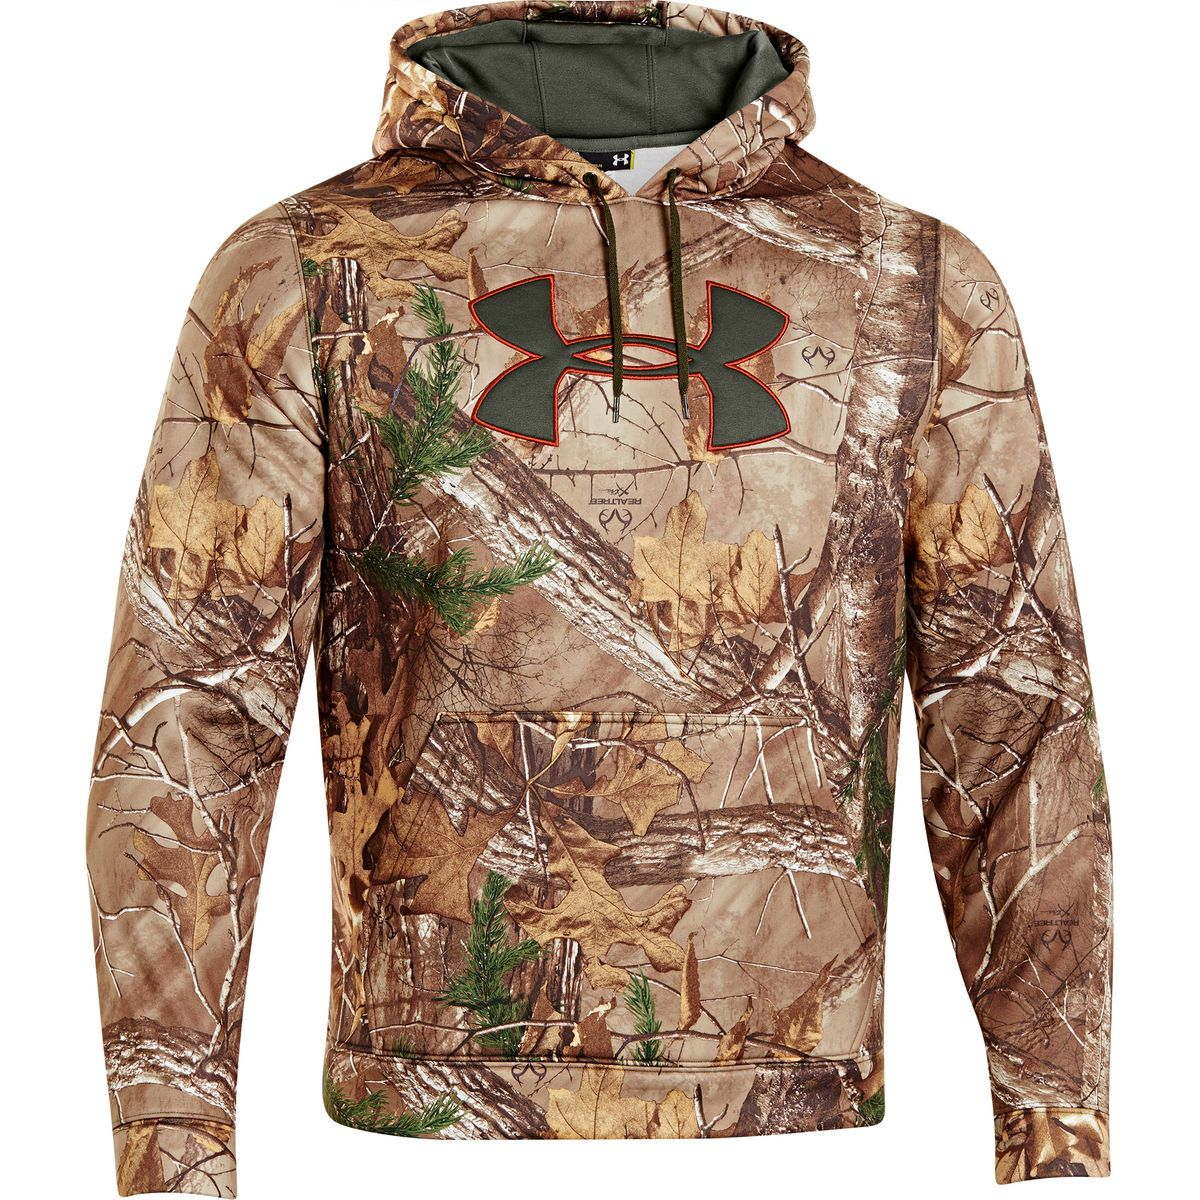 Under Armour Mens Camo Big Logo Pullover Hoodie 777248 Hoodies Hunting Clothes Under Armour Sweatshirts [ 1200 x 1200 Pixel ]